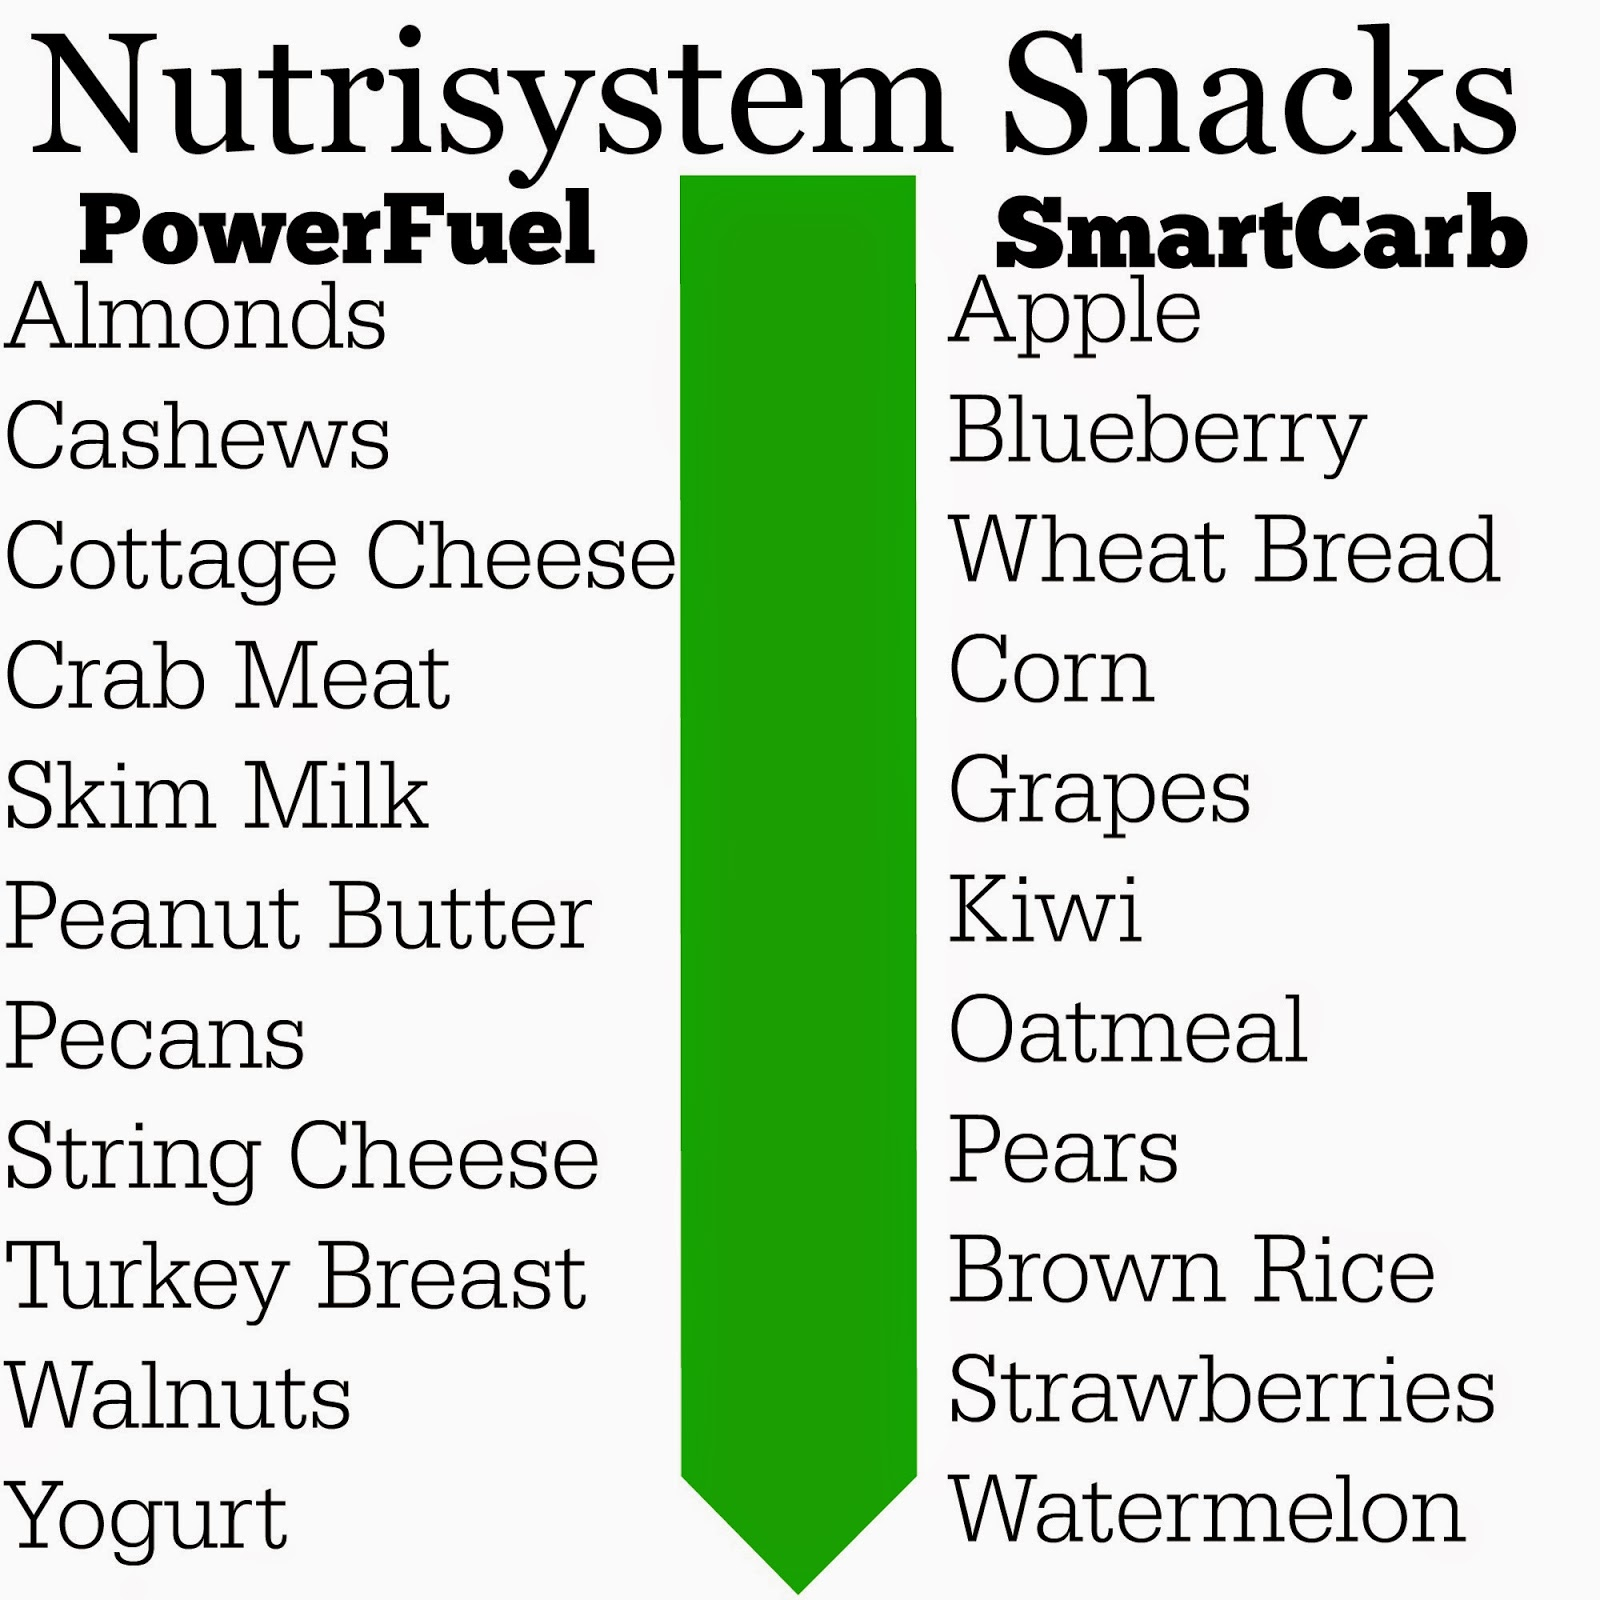 What Can I Add To My Nutrisystem Meals?